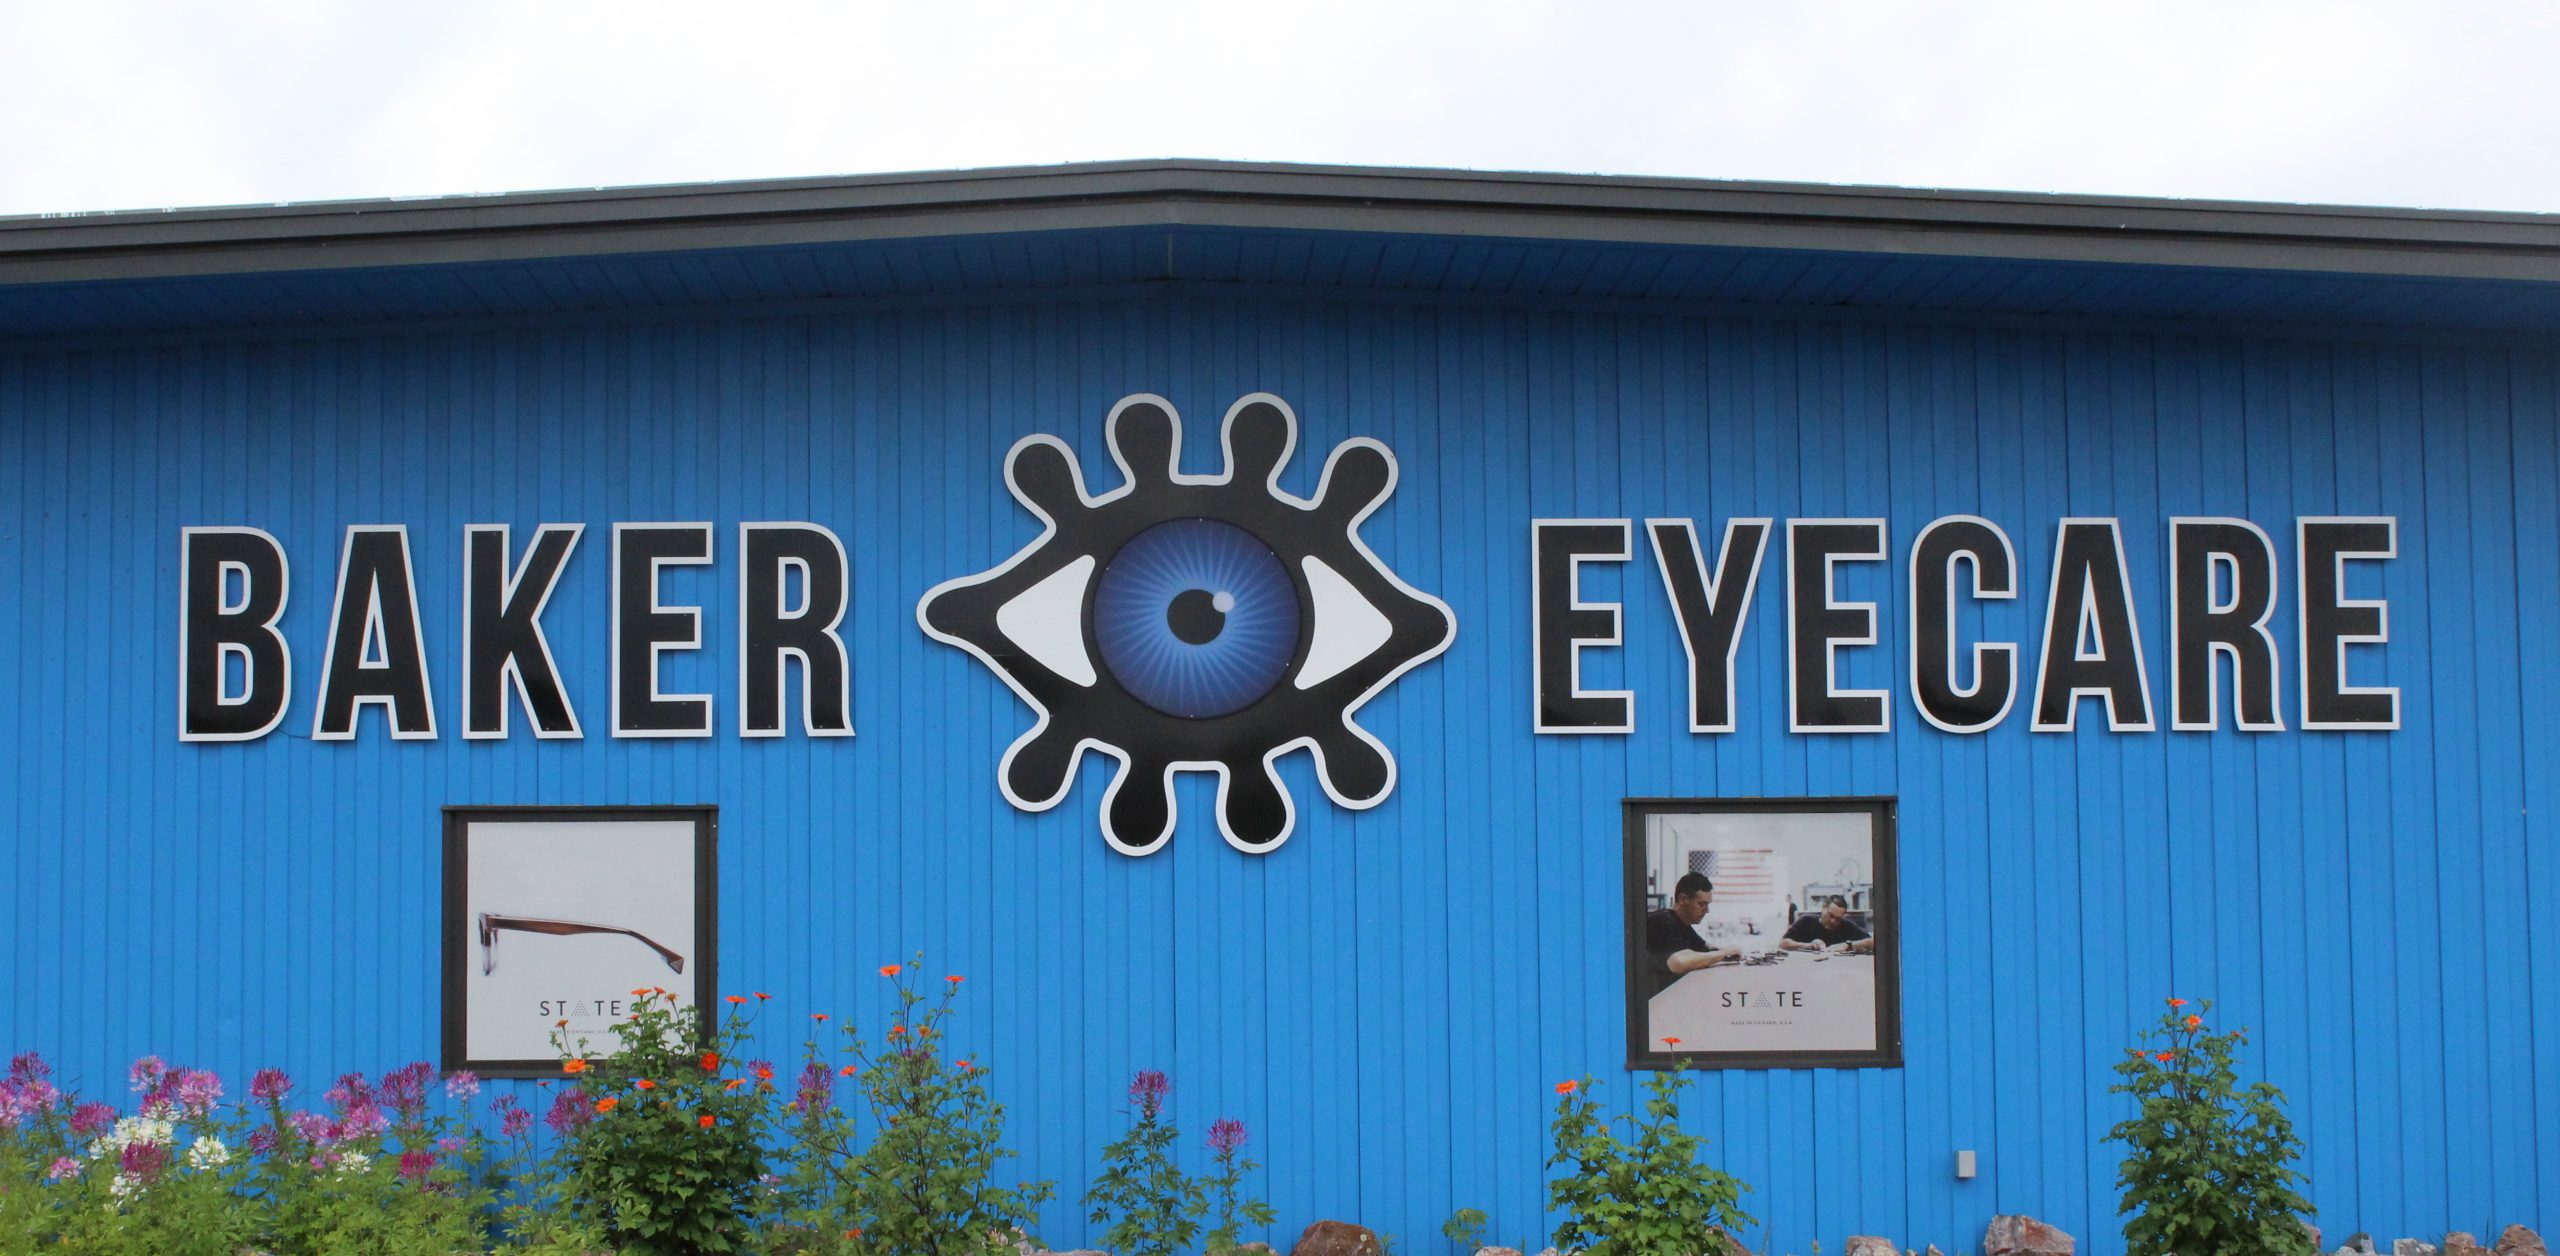 Baker Eye Care clinic of Iron Mountain, MI